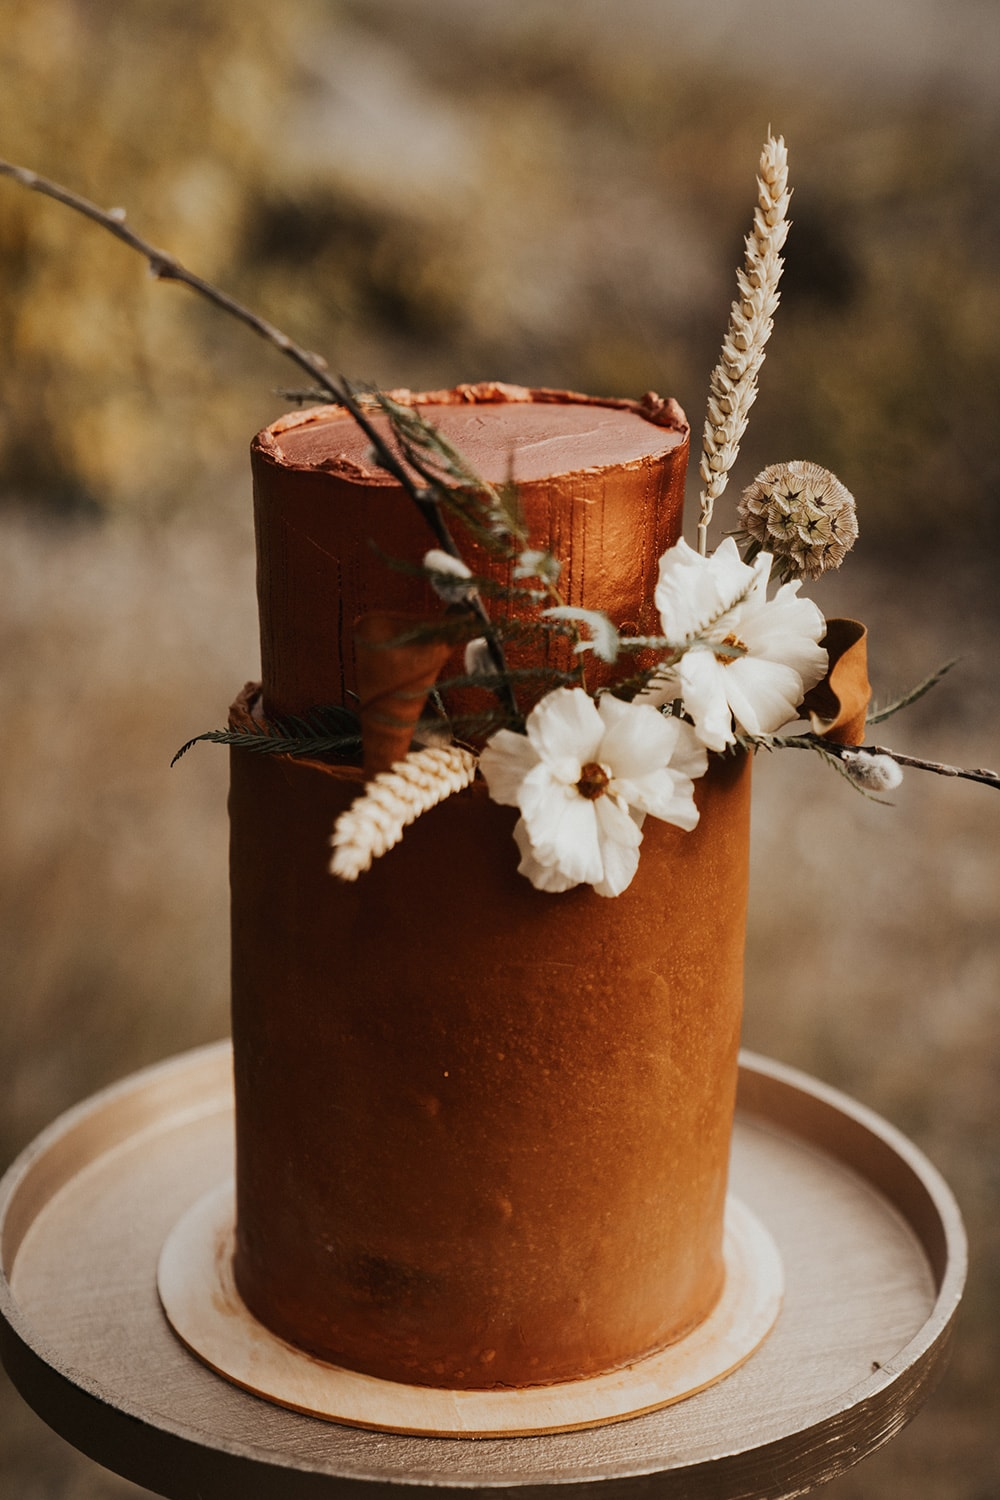 Boho Rust & White Wedding Ideas |  Tall rust coloured two tiered buttercream wedding cake with a small arrangement of rustic white and dried flowers between the first and second tier. | Photography: Anna Tee Photography via Storyboard Wedding